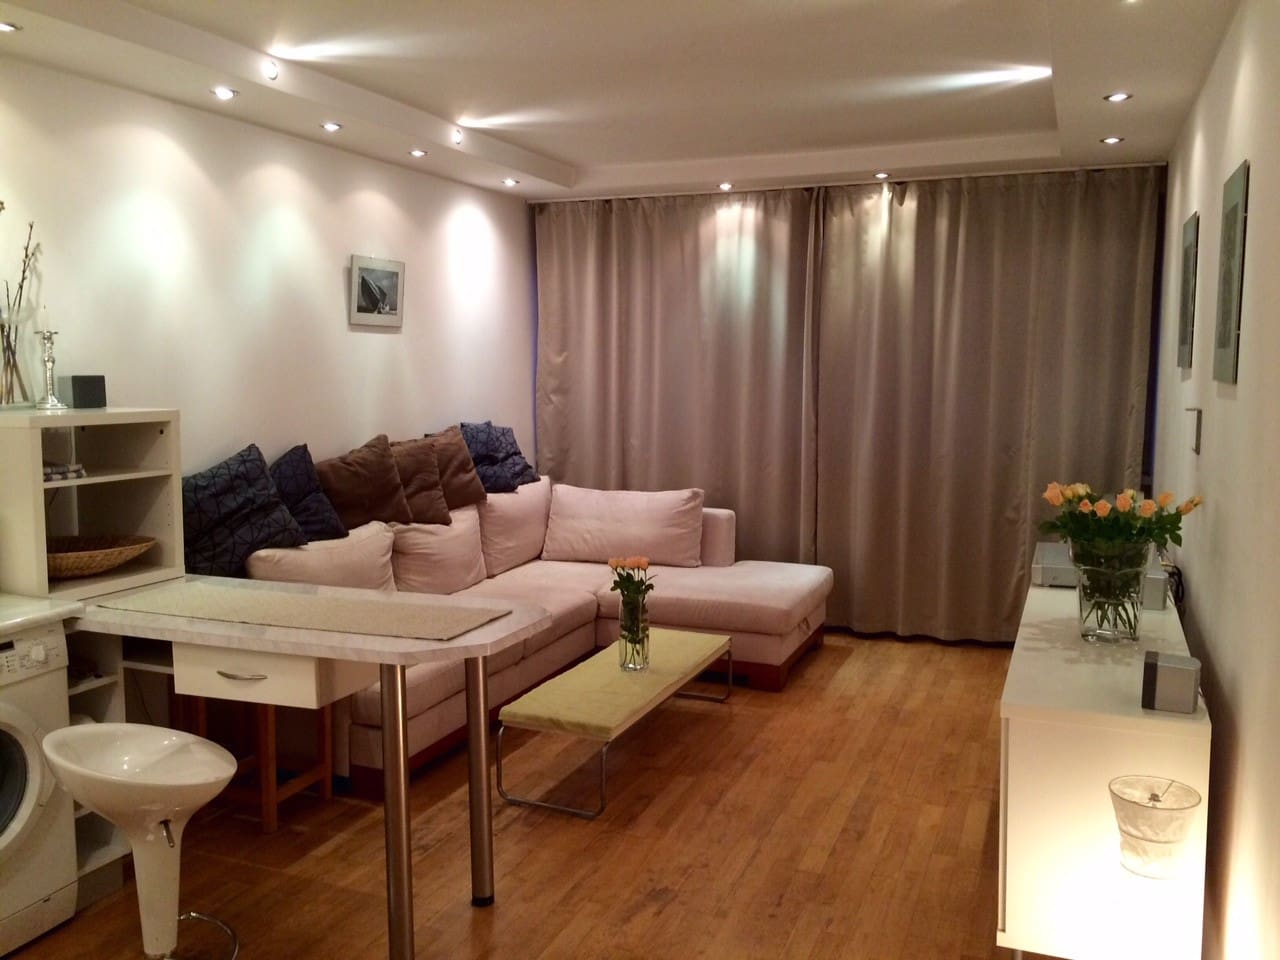 Living room with the reversible sofa